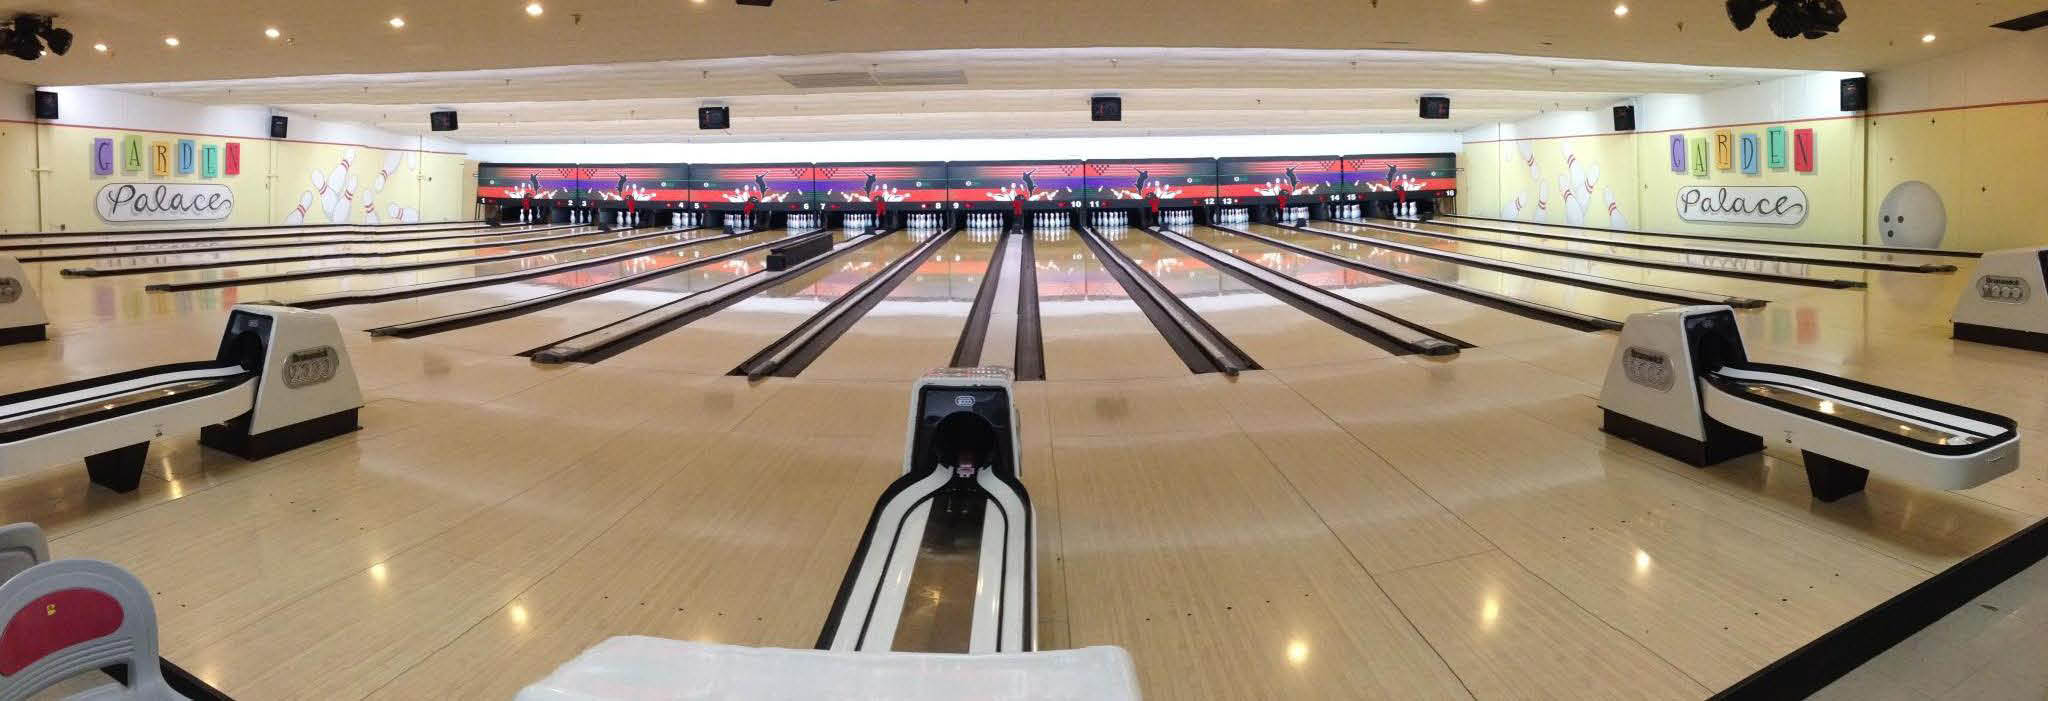 Garden Palace Lanes Bowling Alley